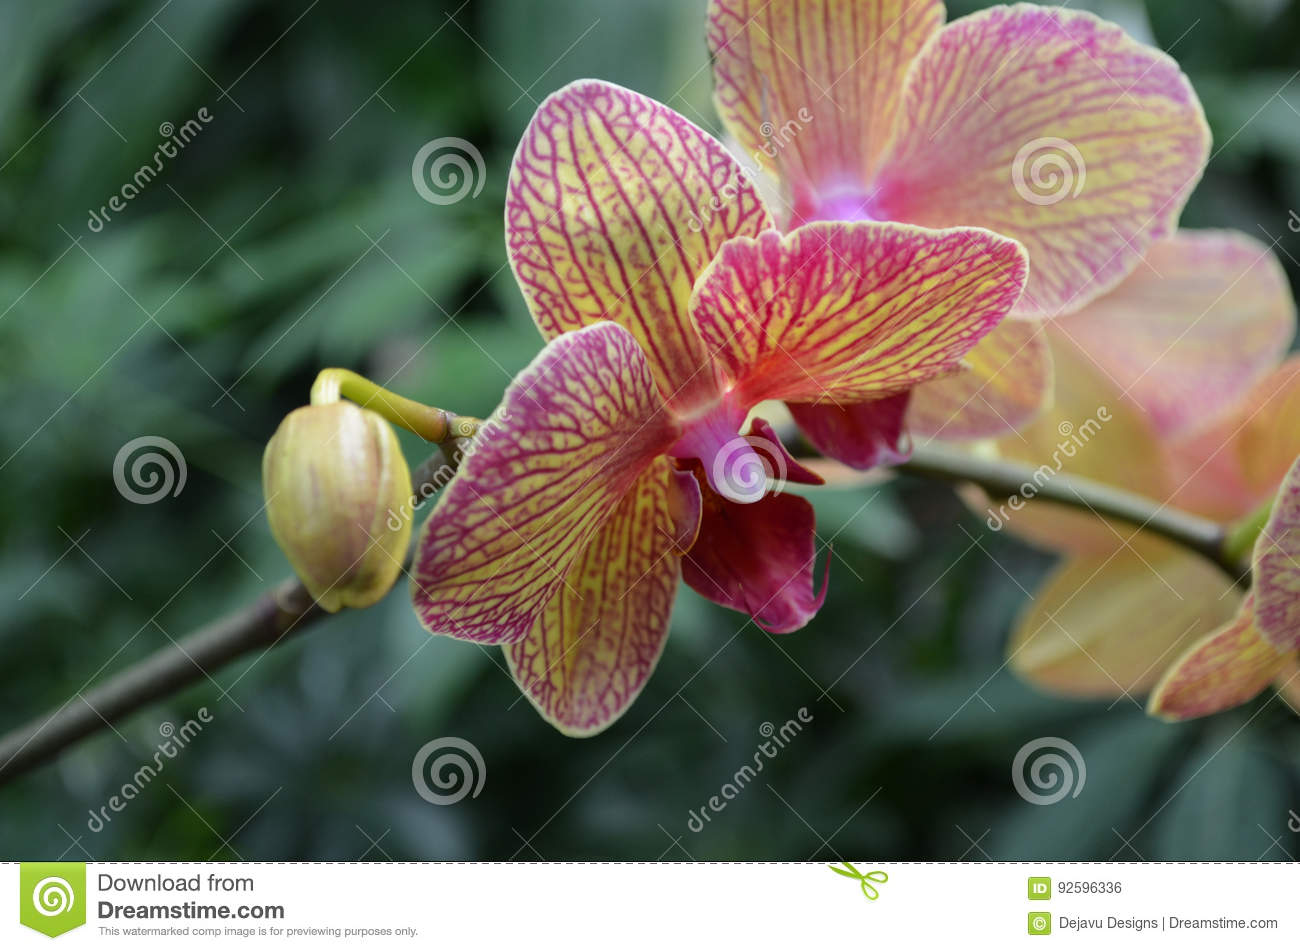 Rare garden orchid flower blooming into a beautiful flower stock download rare garden orchid flower blooming into a beautiful flower stock photo image of pink izmirmasajfo